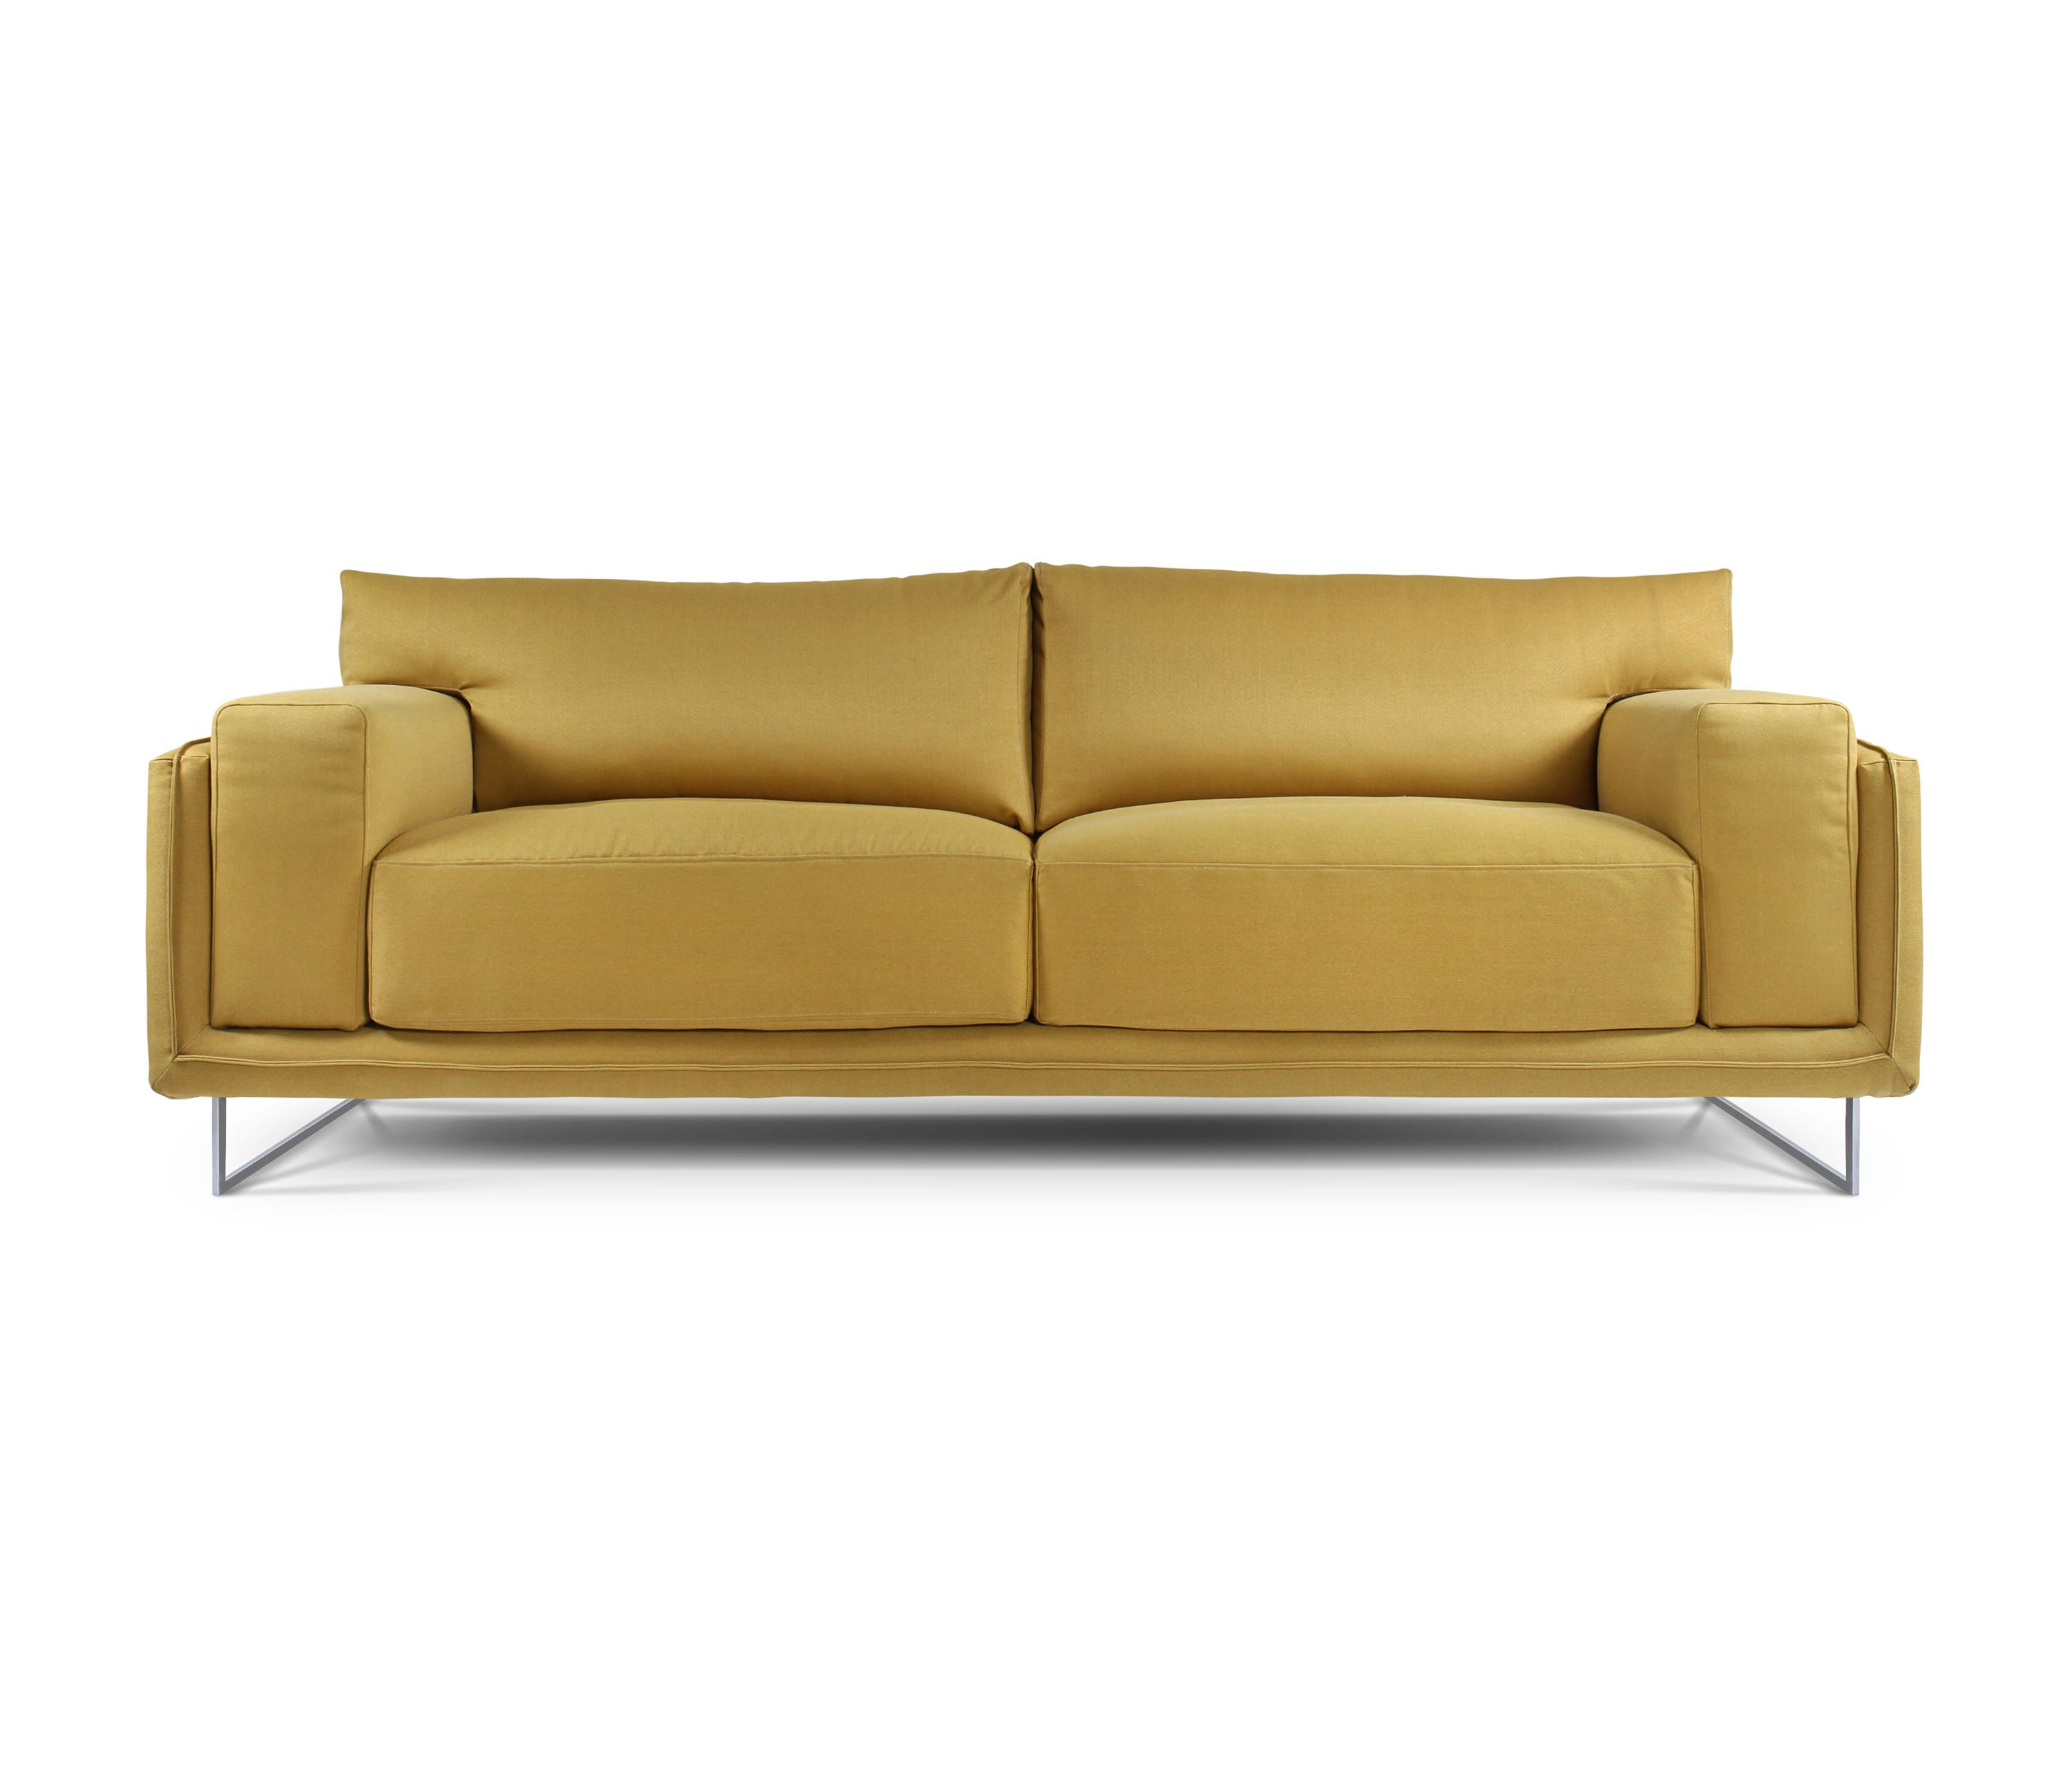 Sofa lounger pictures to pin on pinterest - Olive Designer Lounge Sofas From Moya All Information High Resolution Images